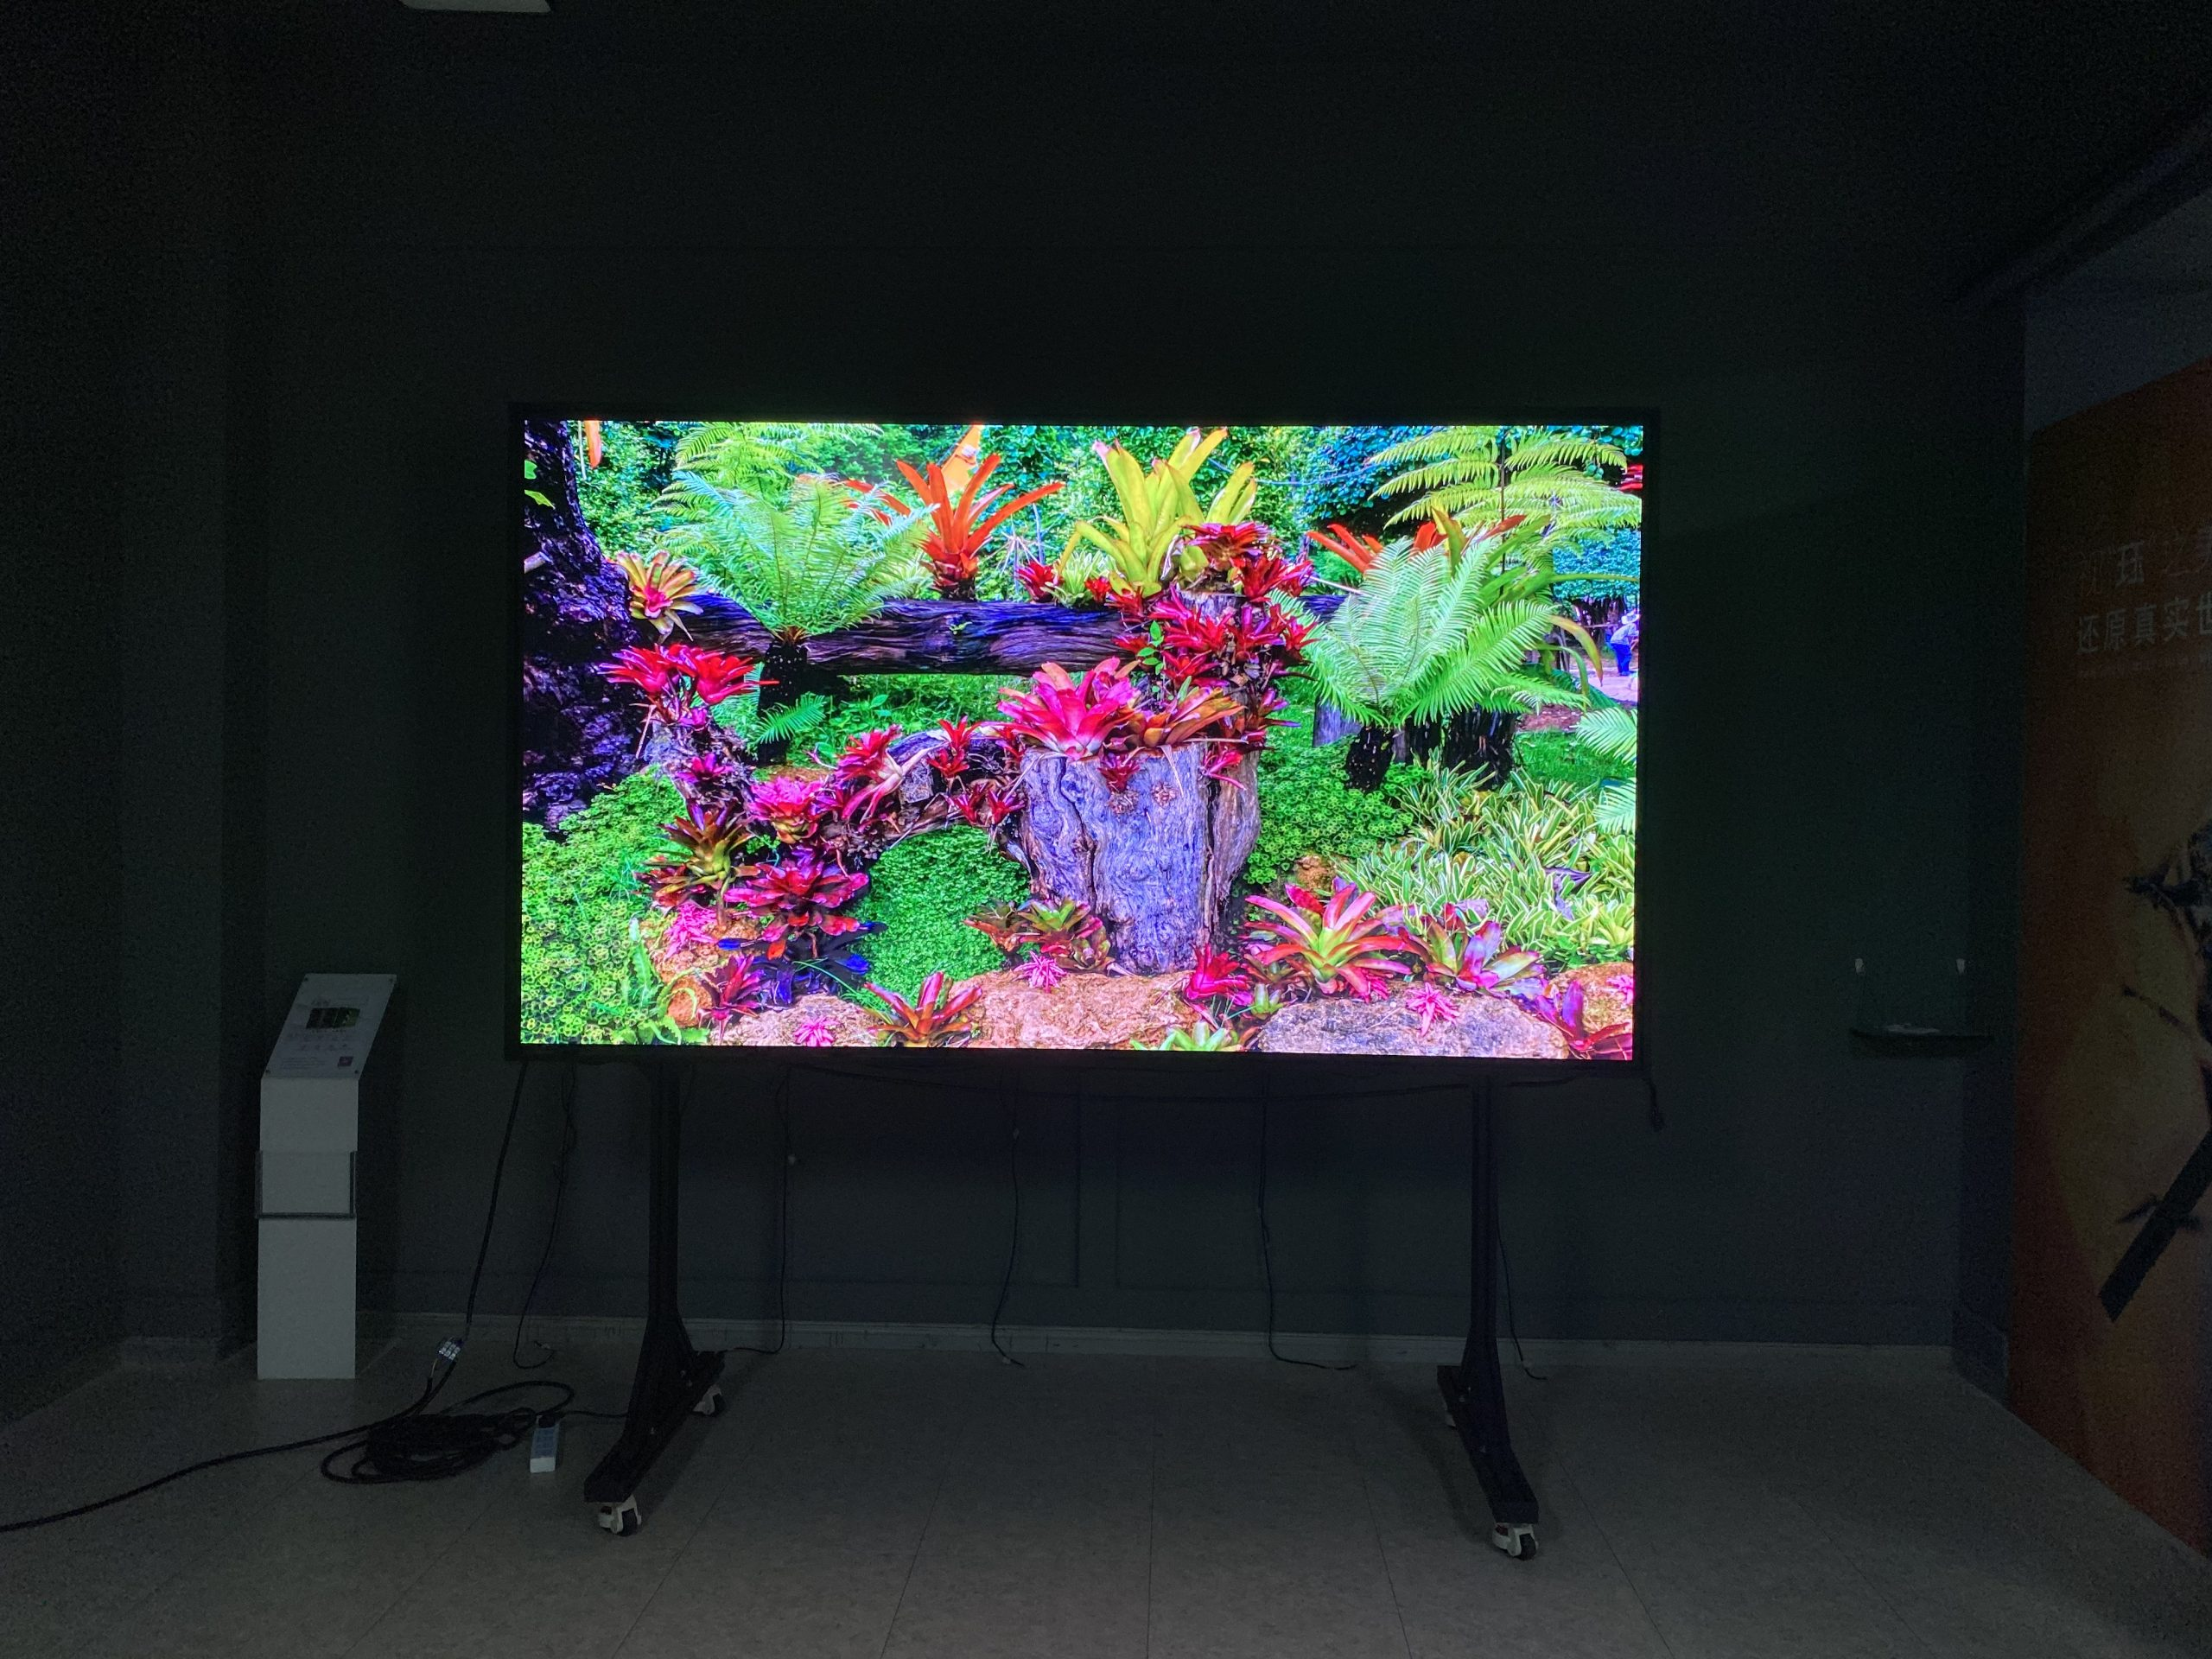 Technology | advantages, disadvantages and future of different packaging technologies for LED small pixel pitch products!